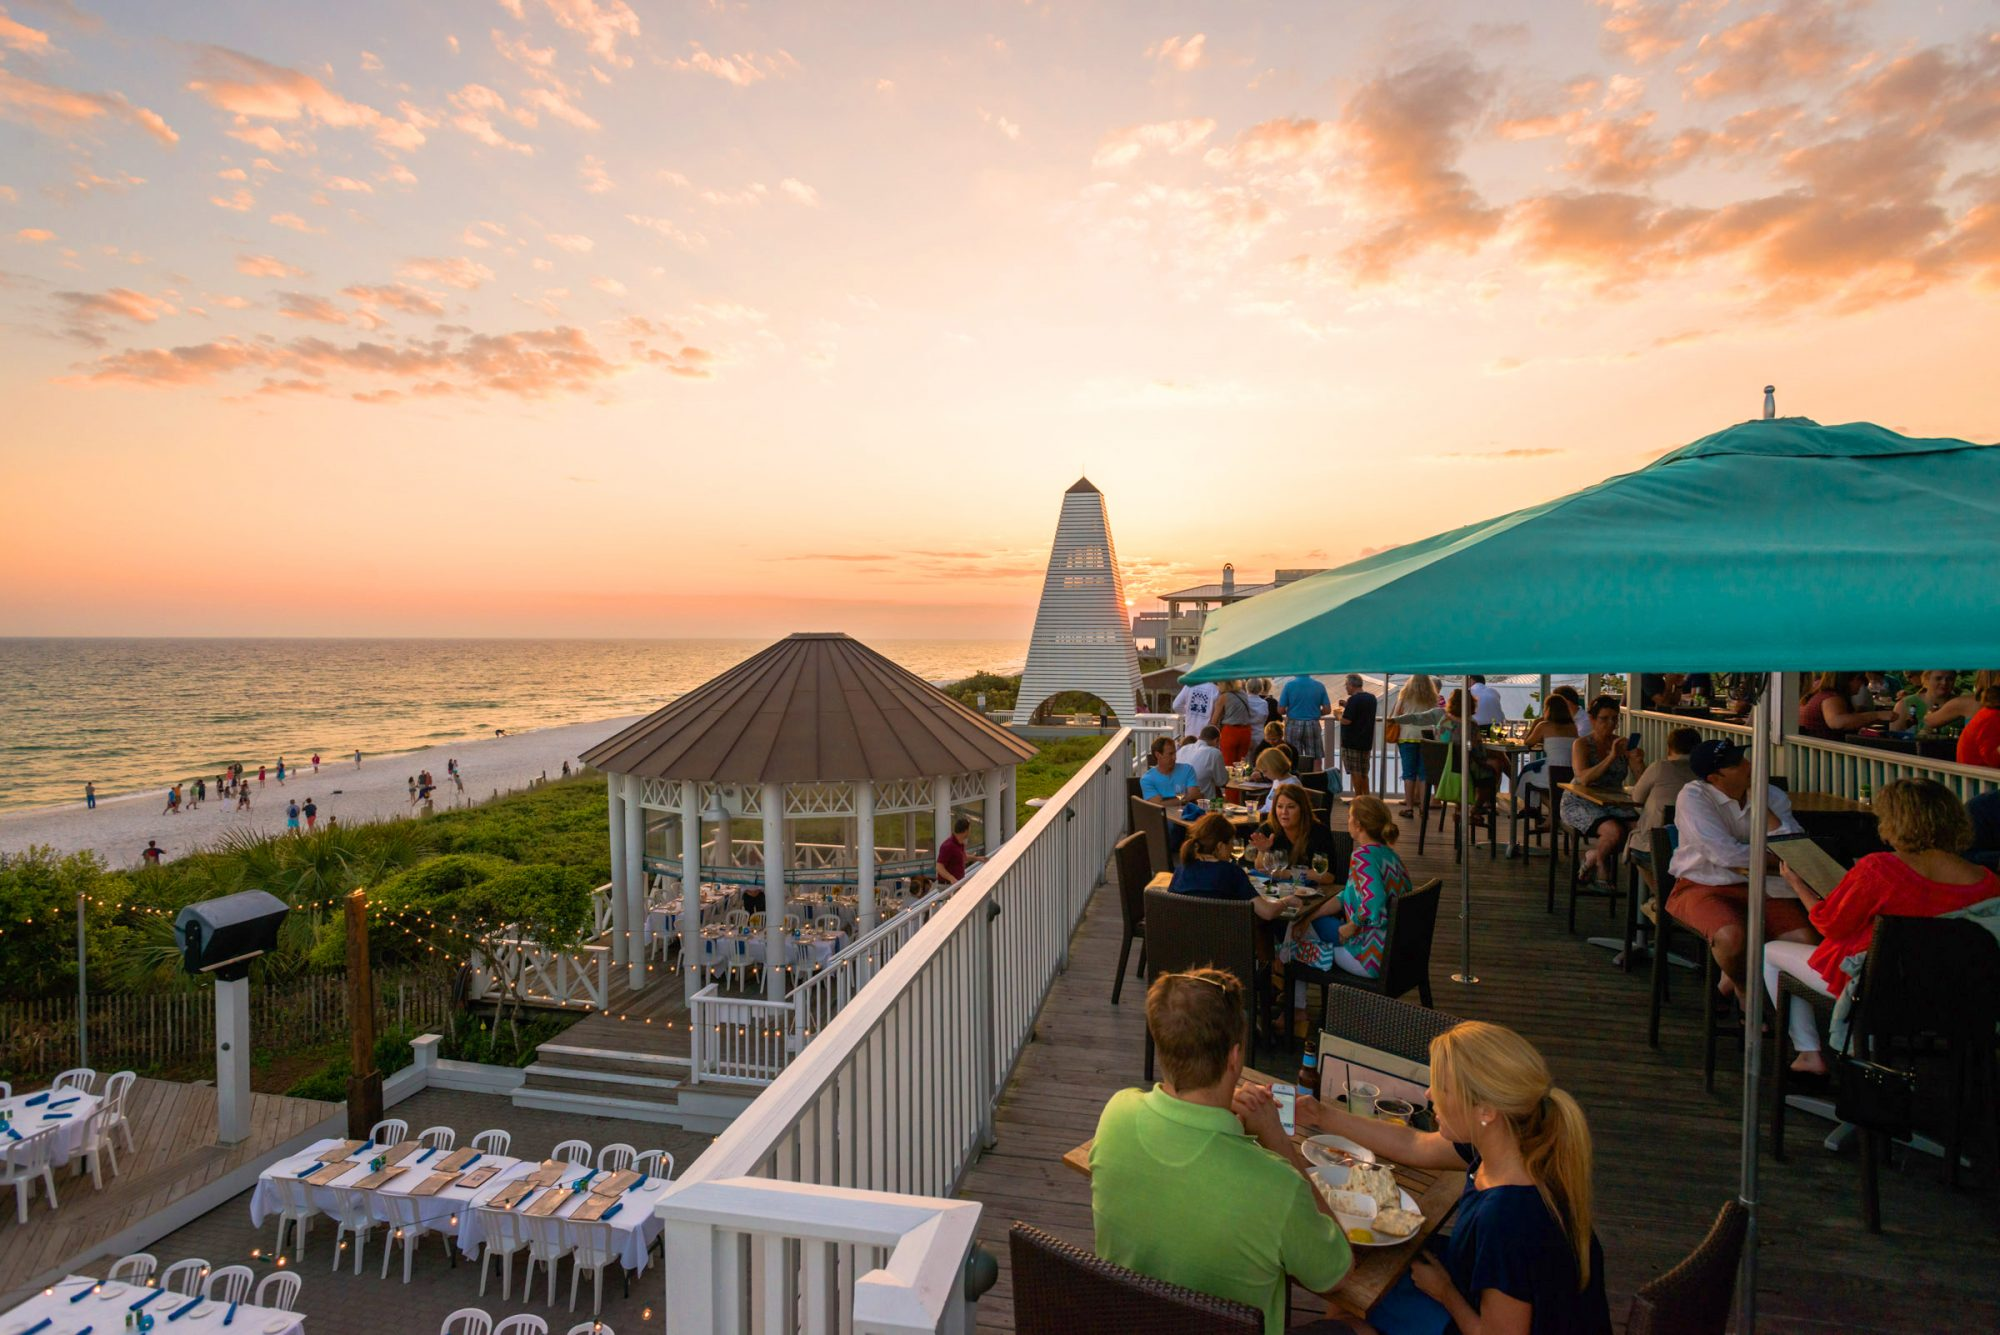 Bud & Alley's in Seaside, Florida